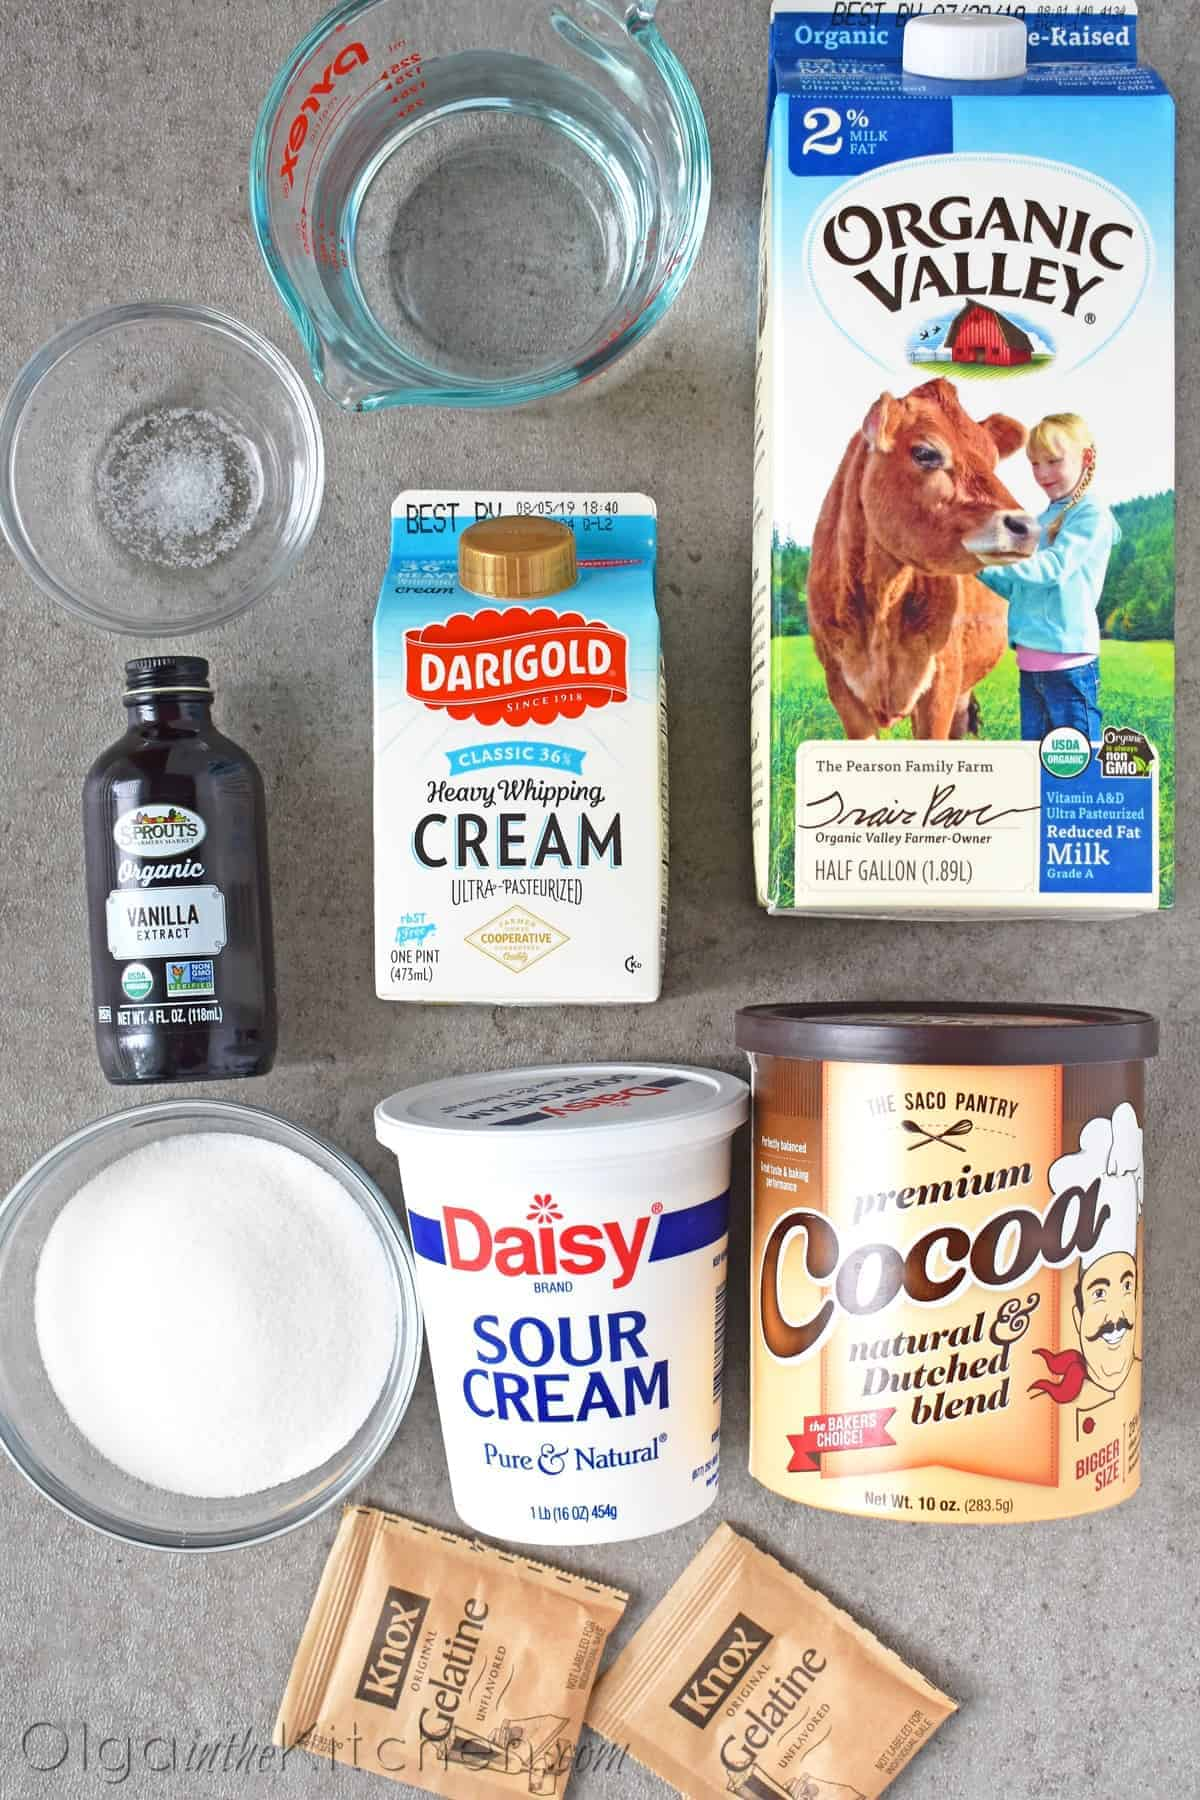 Panna Cotta Chocolate Jello Ingredients